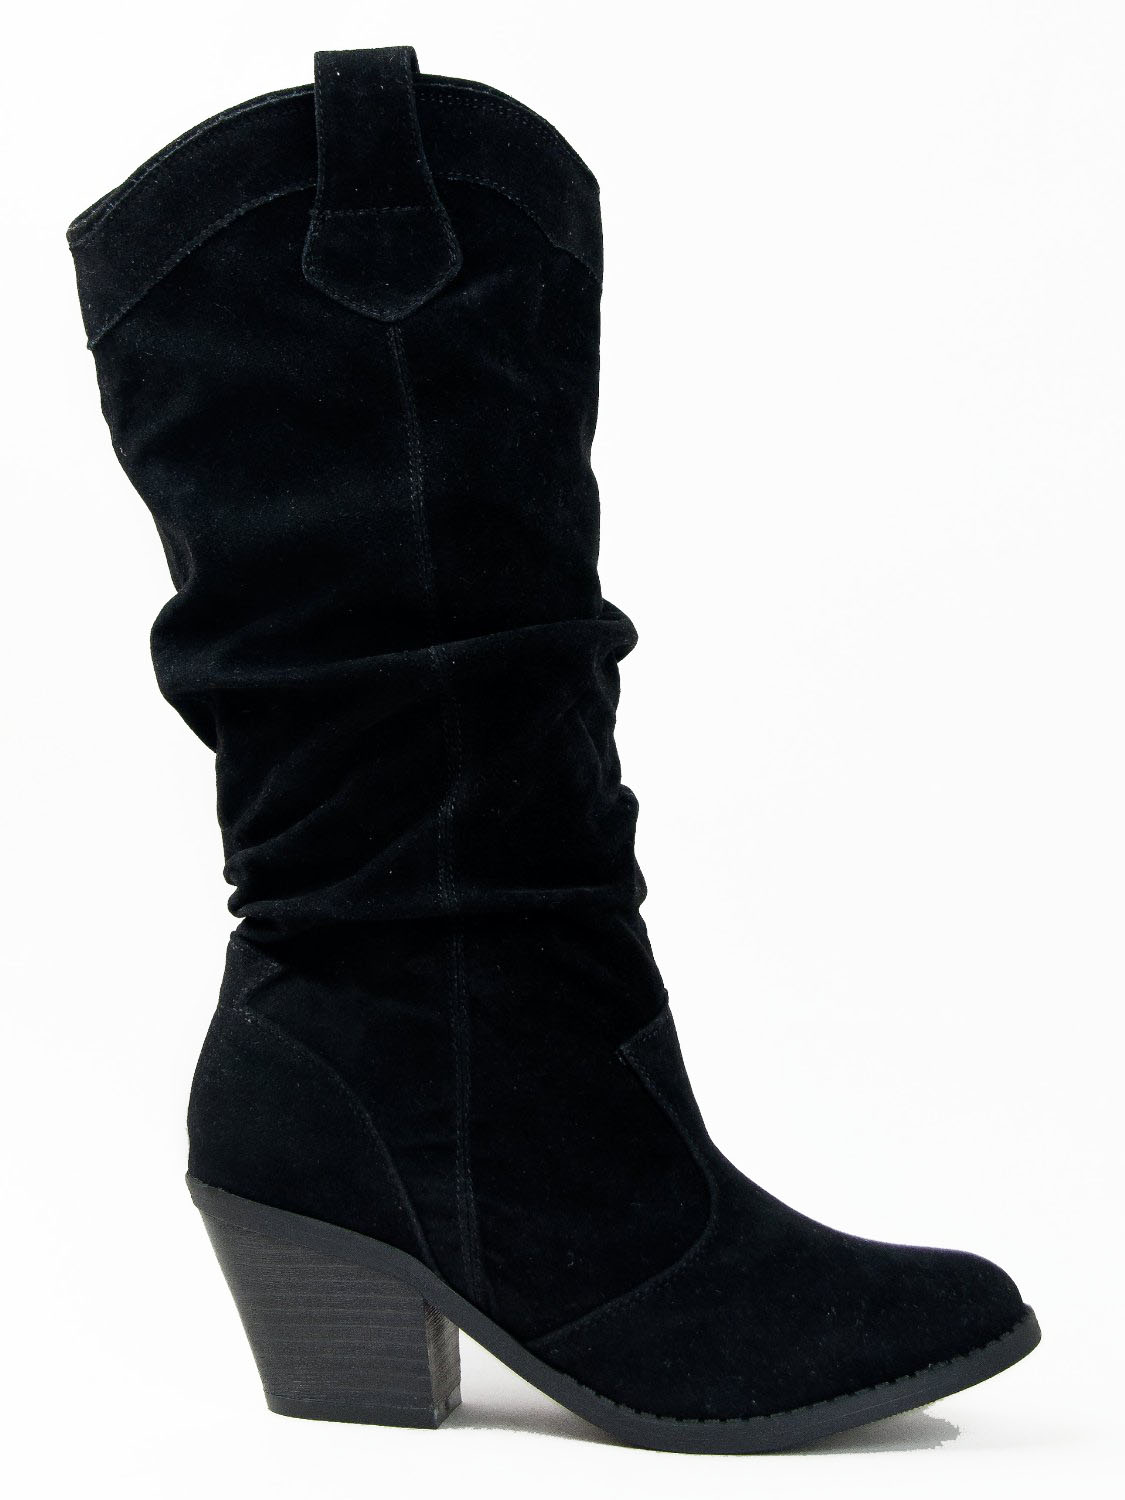 Qupid-MUSE-01-Western-Cowboy-Inspired-Slouchy-Mid-Calf-Knee-High-Stacked-Heel miniature 8